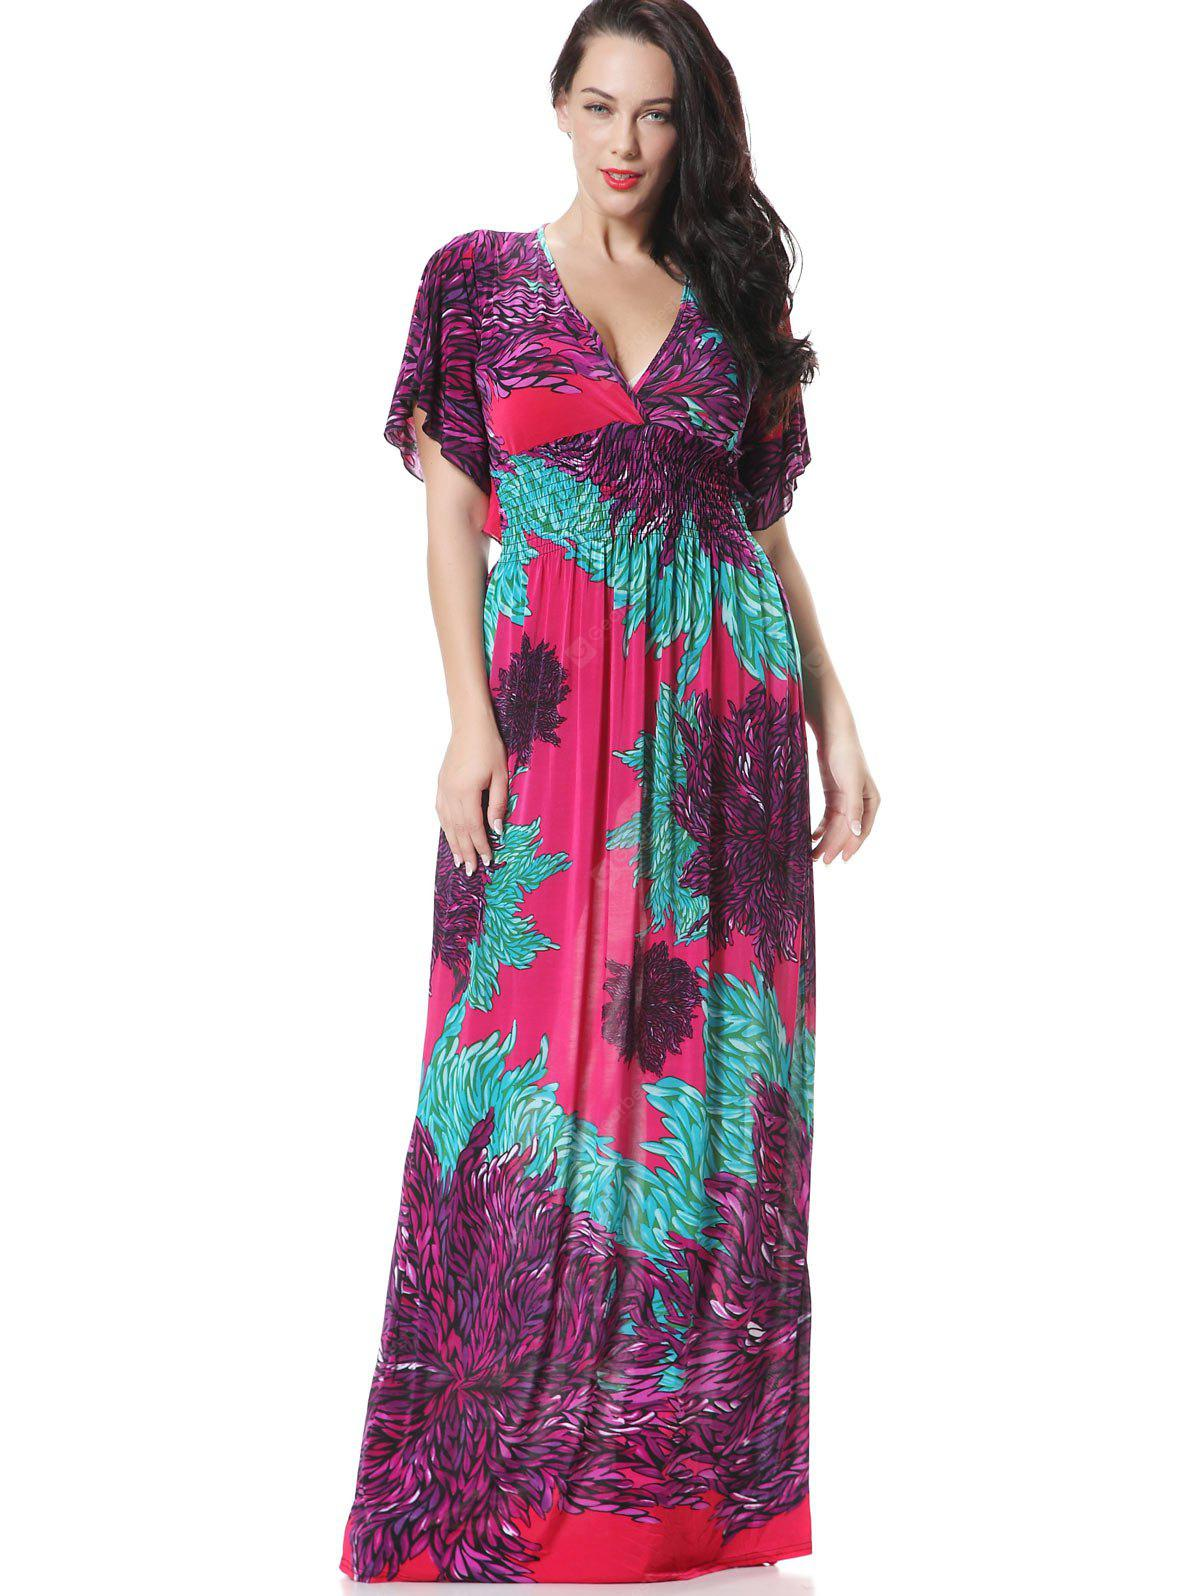 PURPLE XL Floral Surplice Smocked Panel Maxi Dress